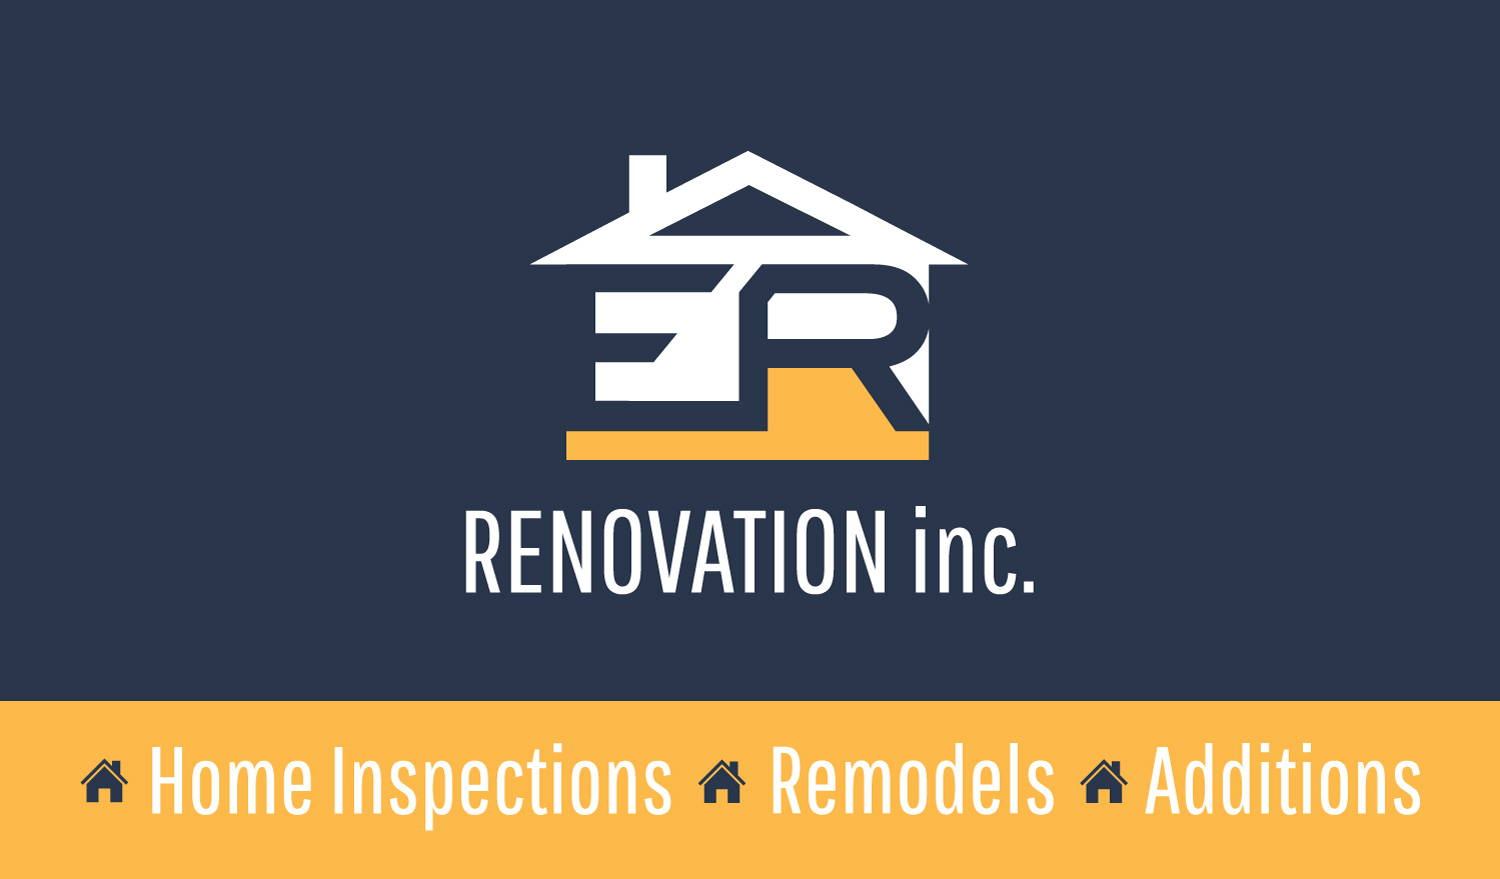 business card for home inspector arkie media this was created in a little over a couple hours and sent off for print the cards should be delivered to his door step within the week thanks ethan